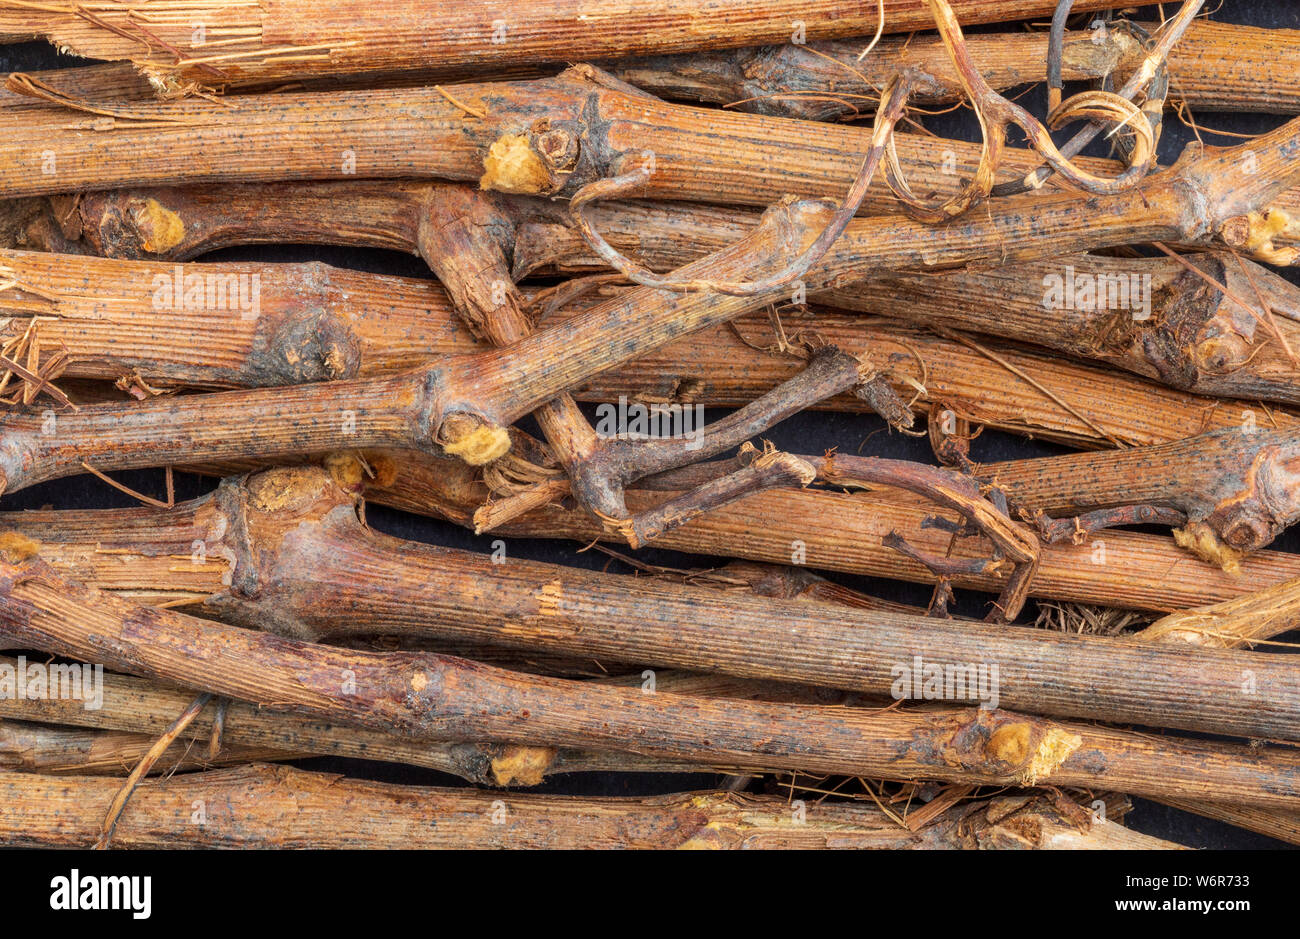 Vine shoot texture (collection of vegetable and natural fibers). Branches. Foreground. Stock Photo